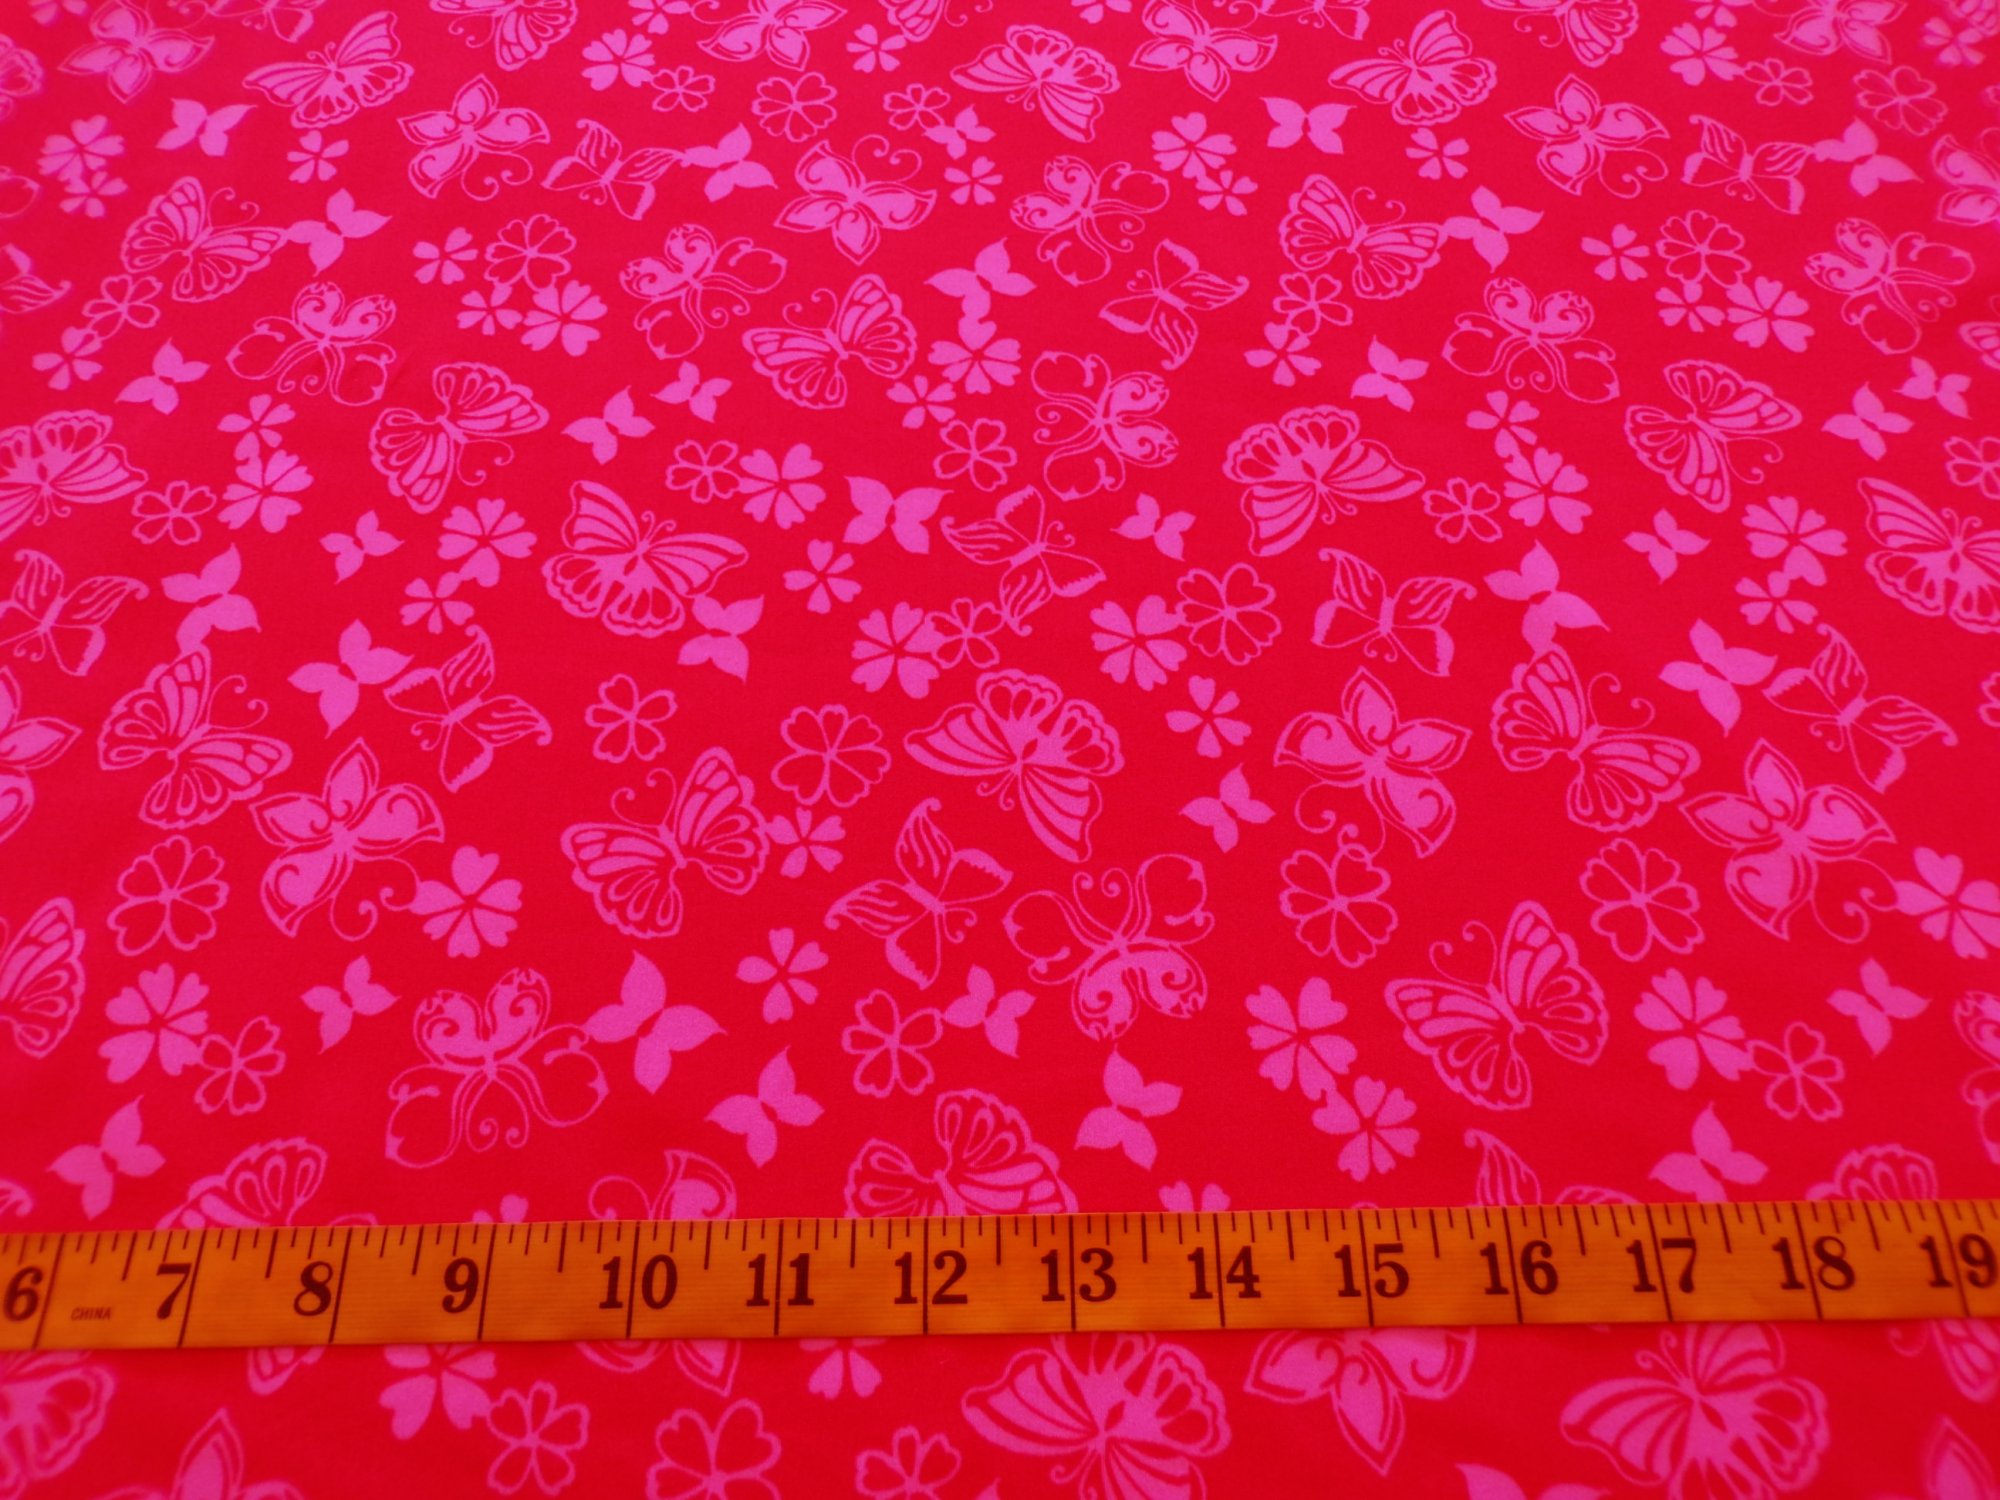 Swimwear - Red with Pink Flowers and Butterflies